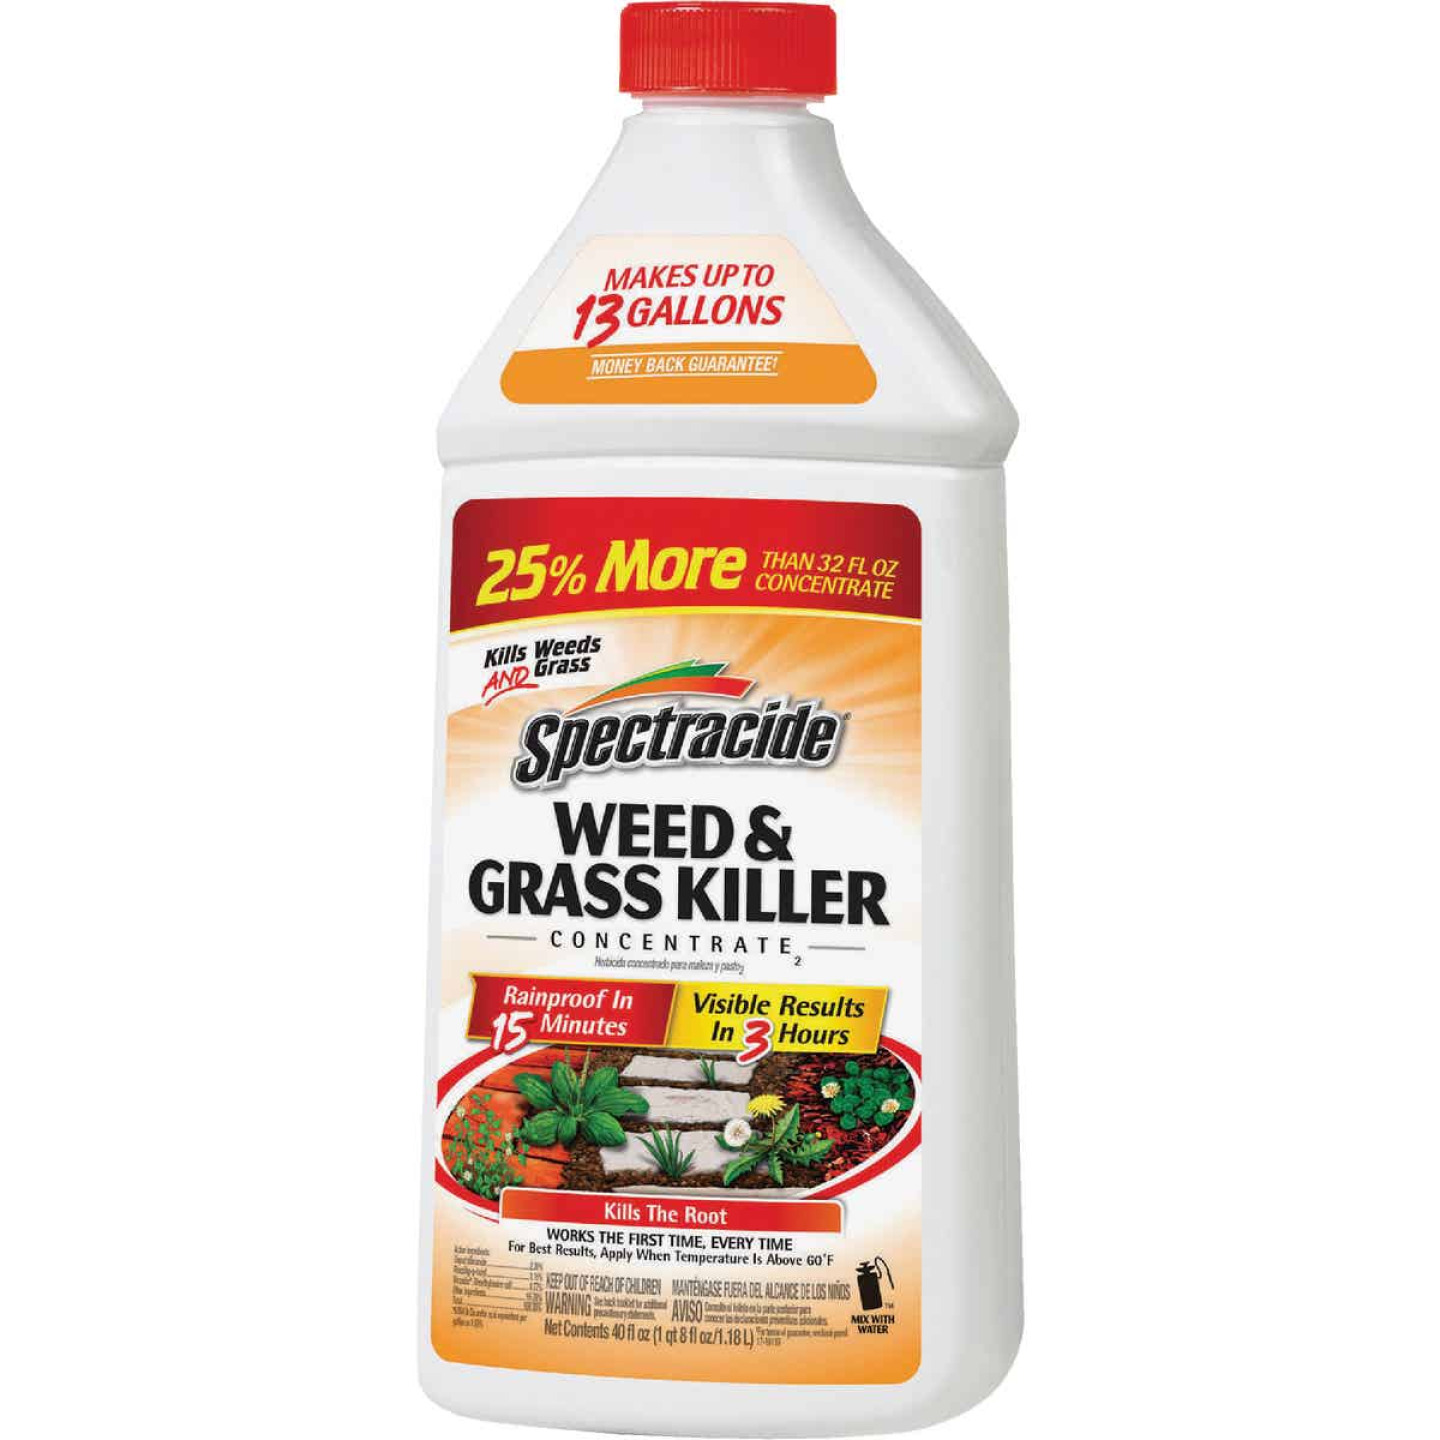 Spectracide 40 Oz. Concentrate Weed & Grass Killer Image 1